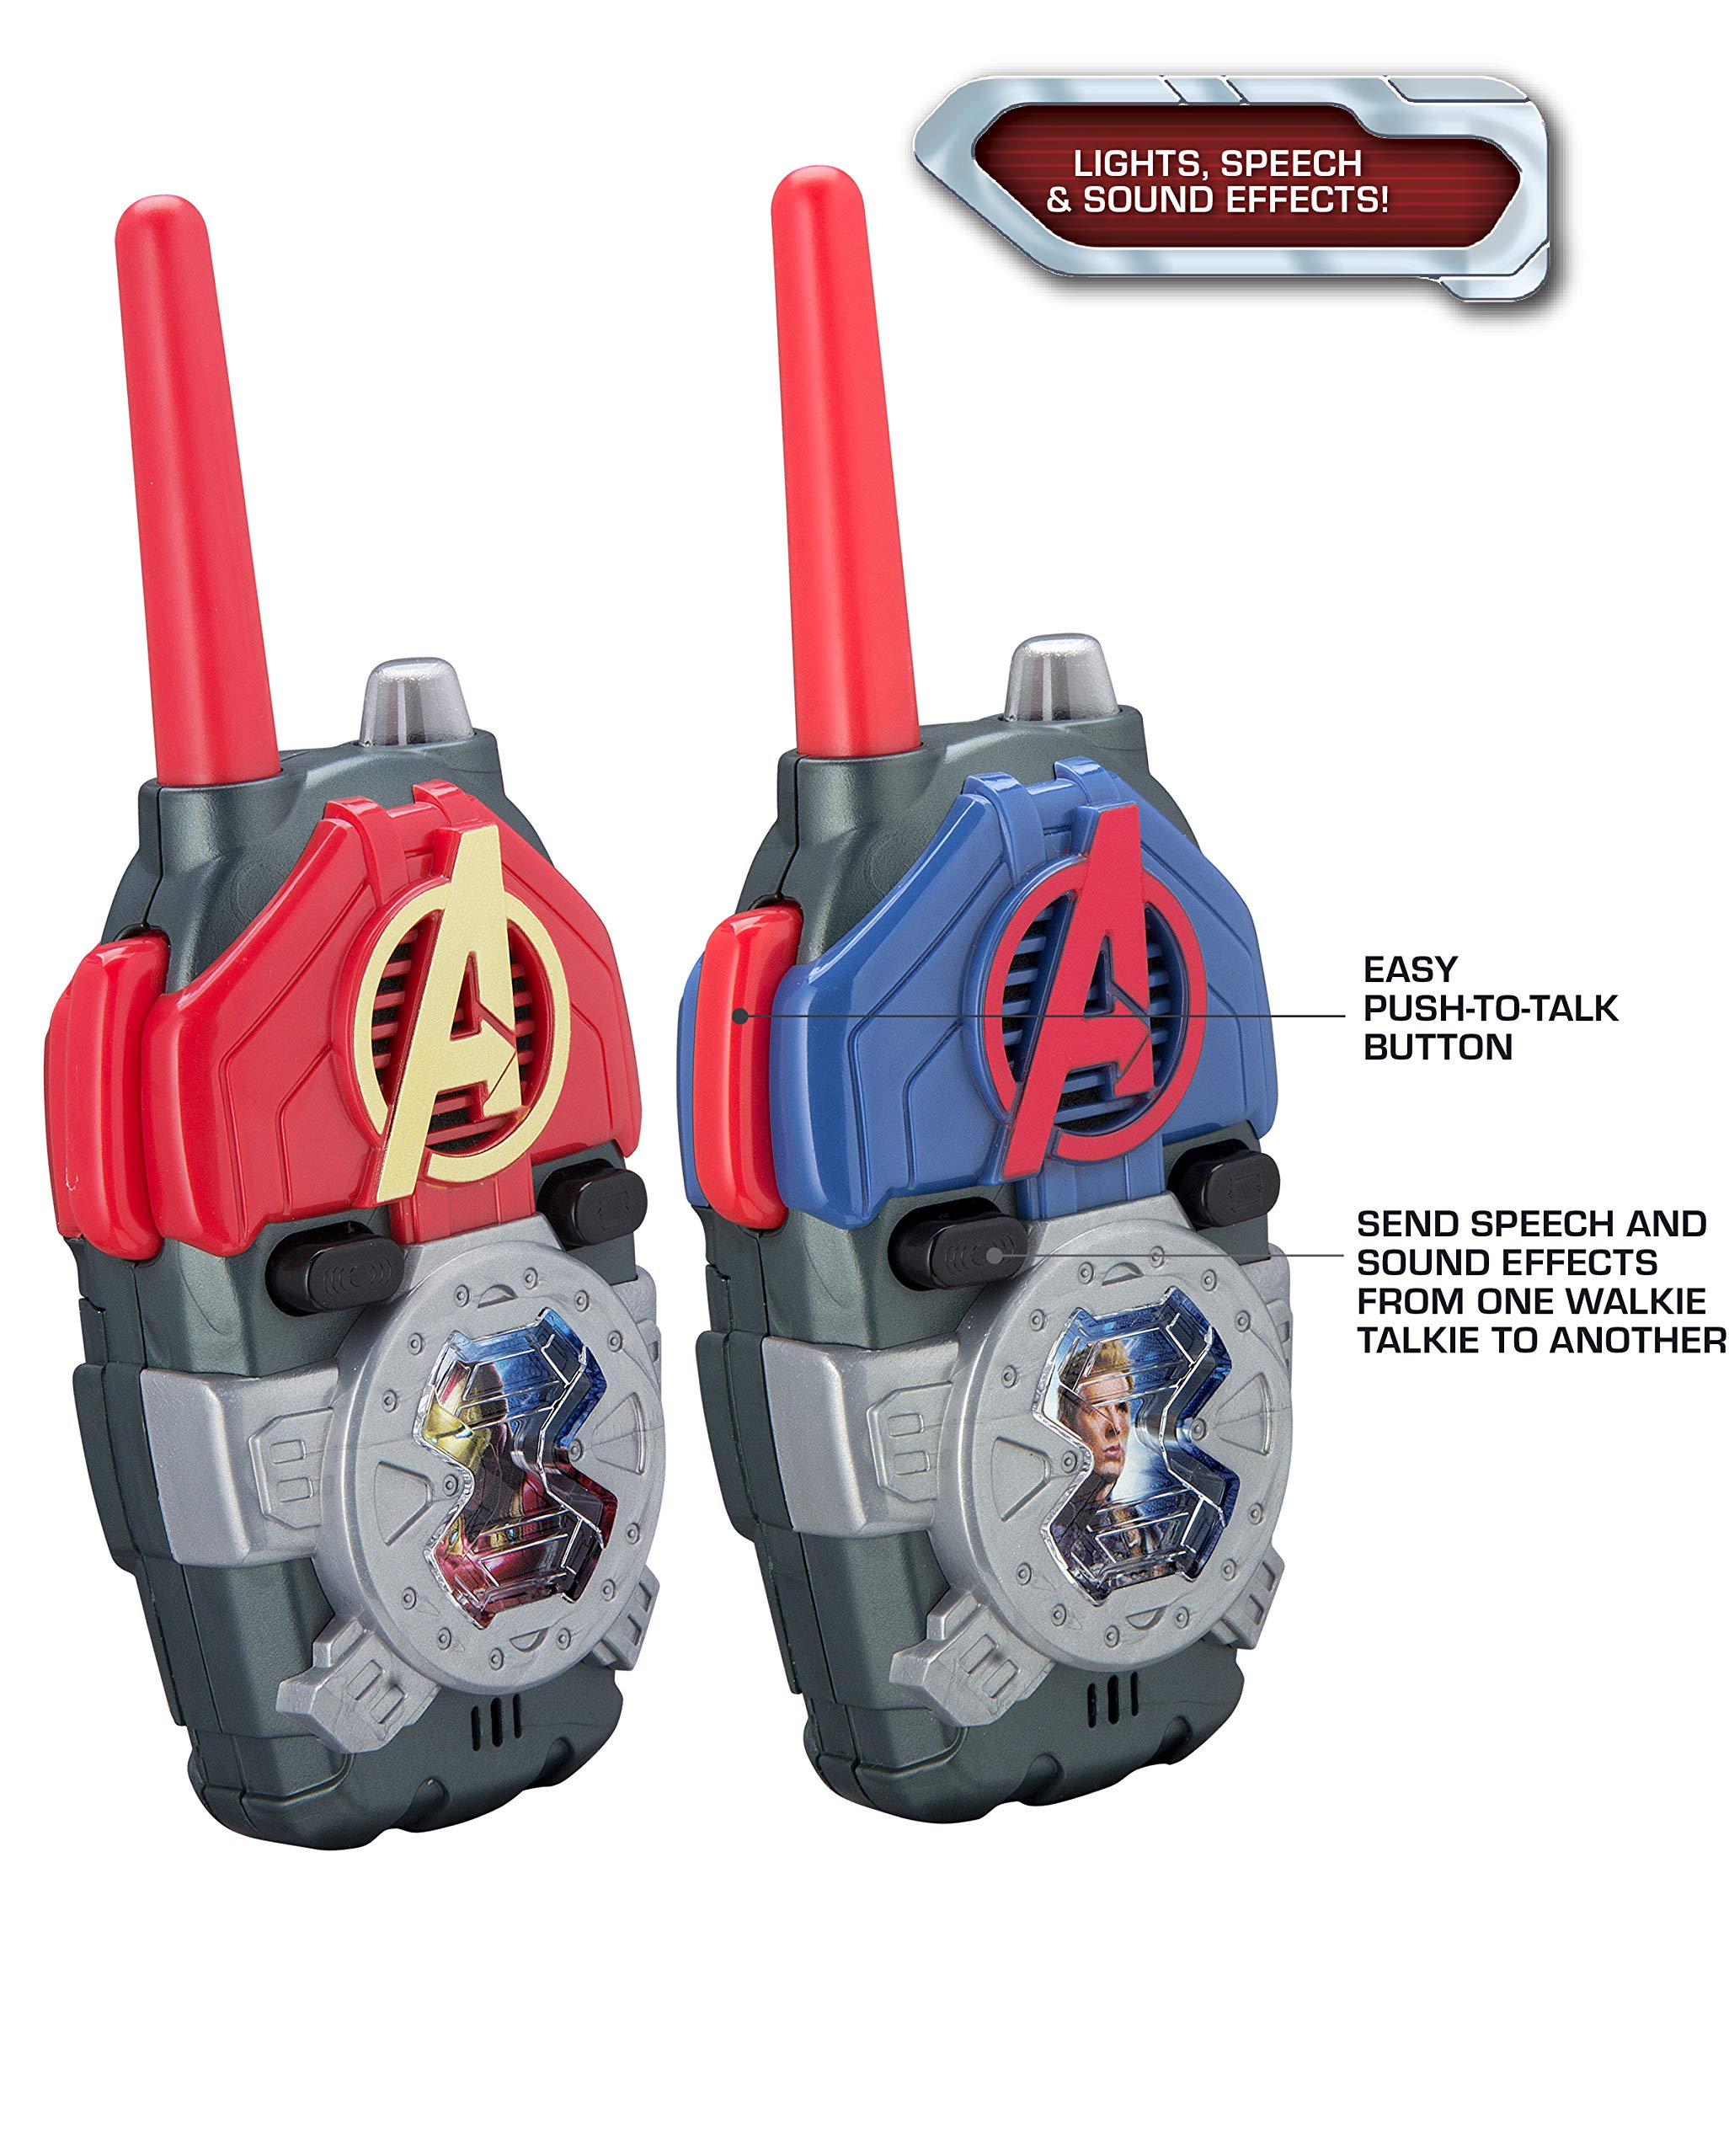 eKids Avengers Endgame FRS Walkie Talkies with Lights & Sounds Kid Friendly Easy to Use by eKids (Image #2)